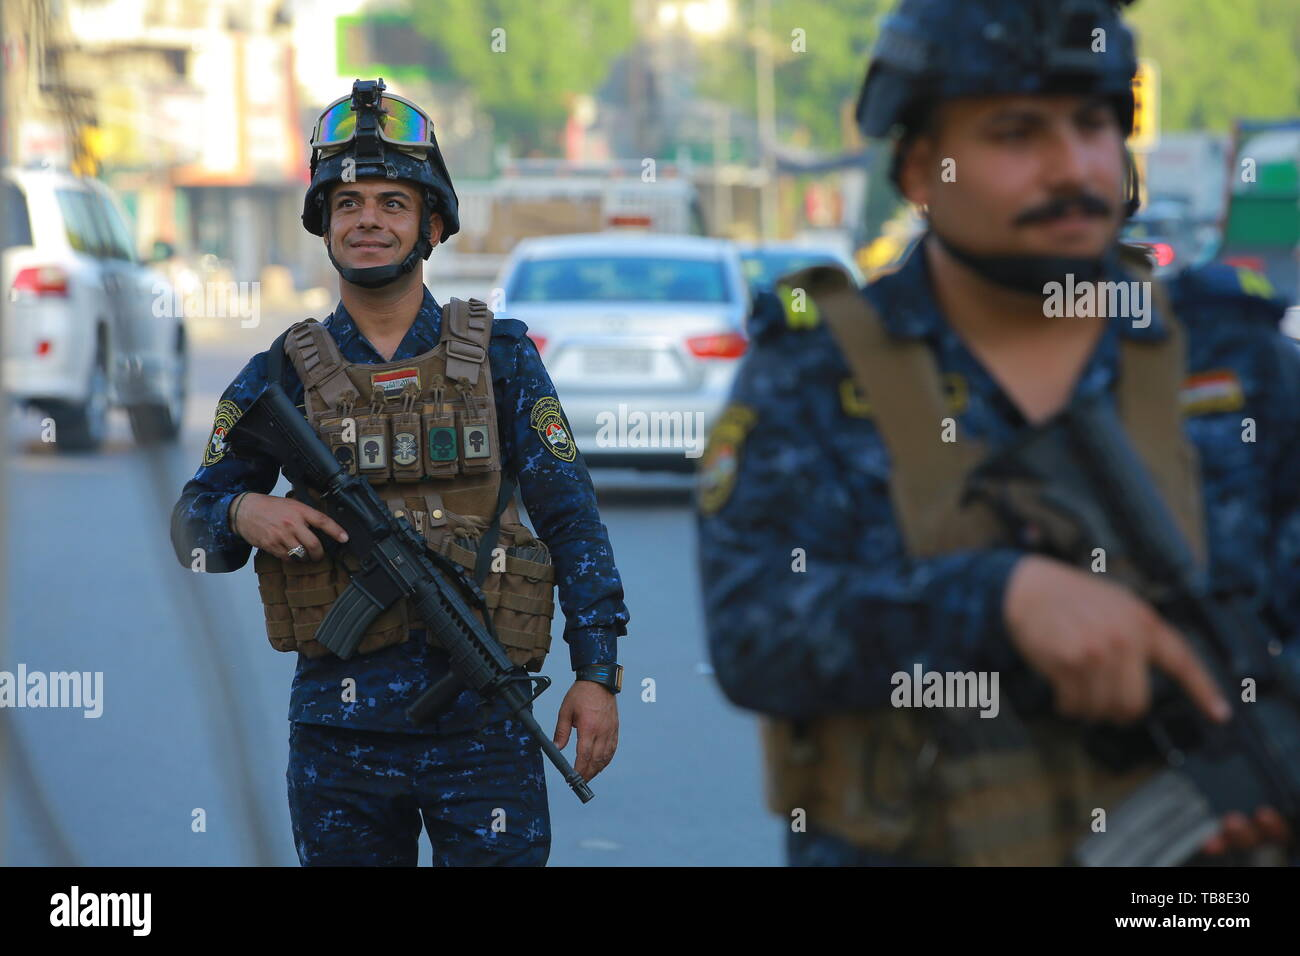 Baghdad, Iraq  30th May, 2019  Members of the Iraqi federal